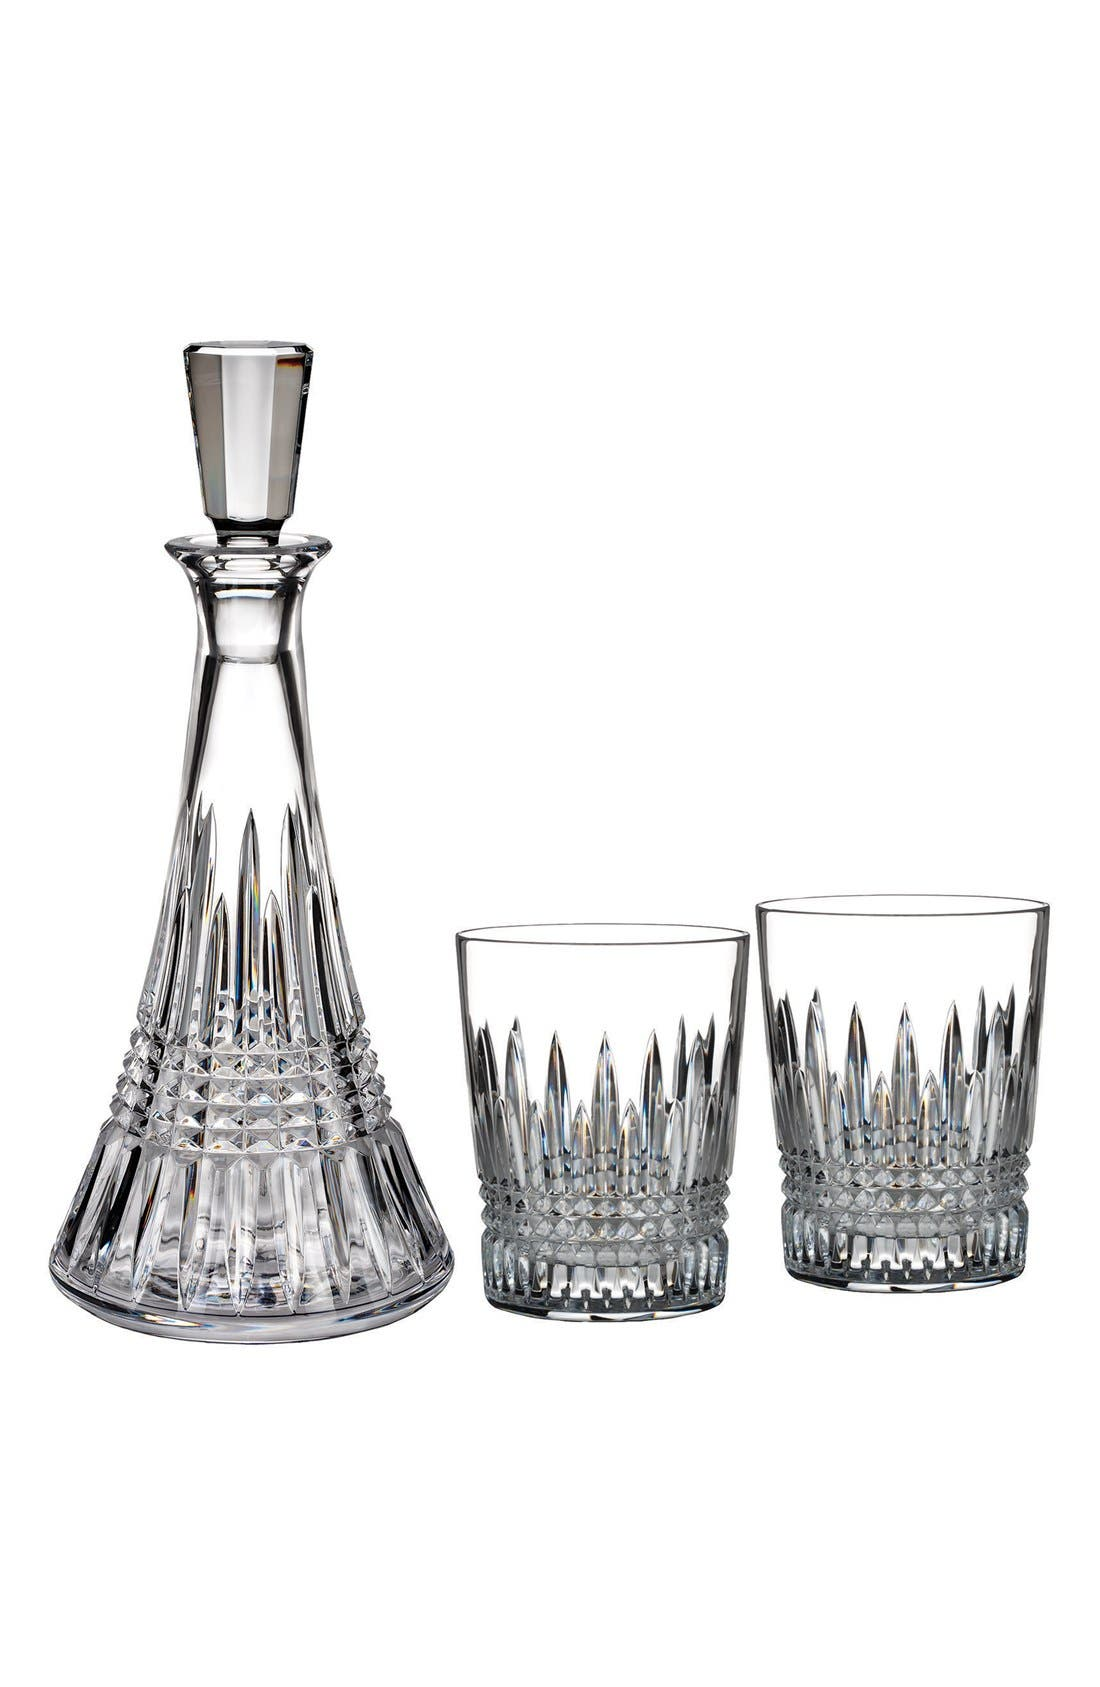 Alternate Image 1 Selected - Waterford 'Lismore Diamond' Lead Crystal Decanter & Double Old-Fashioned Glasses (Set of 3)